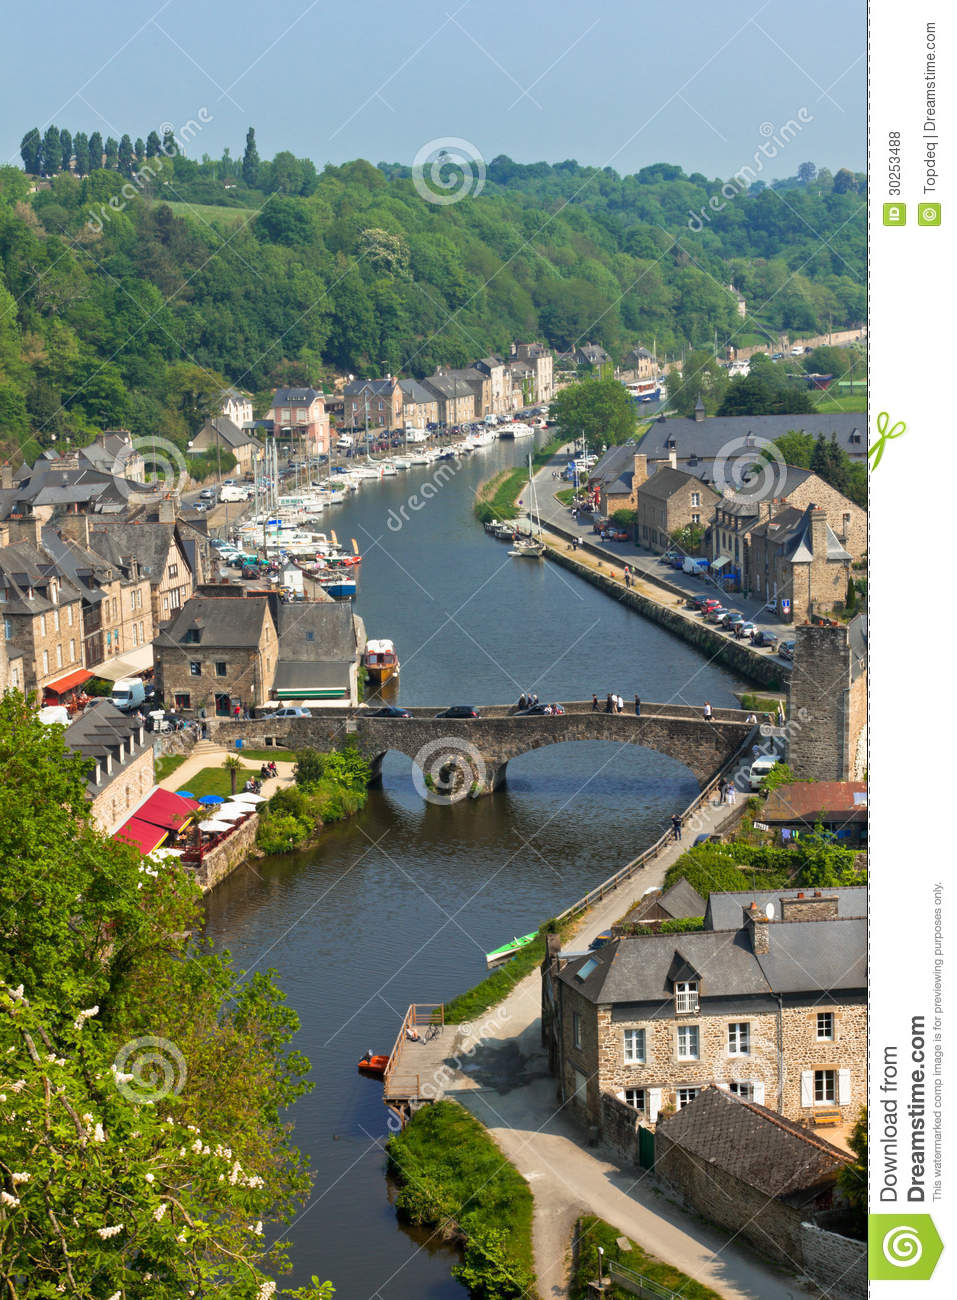 dinan brittany france ancient town on the river stock. Black Bedroom Furniture Sets. Home Design Ideas